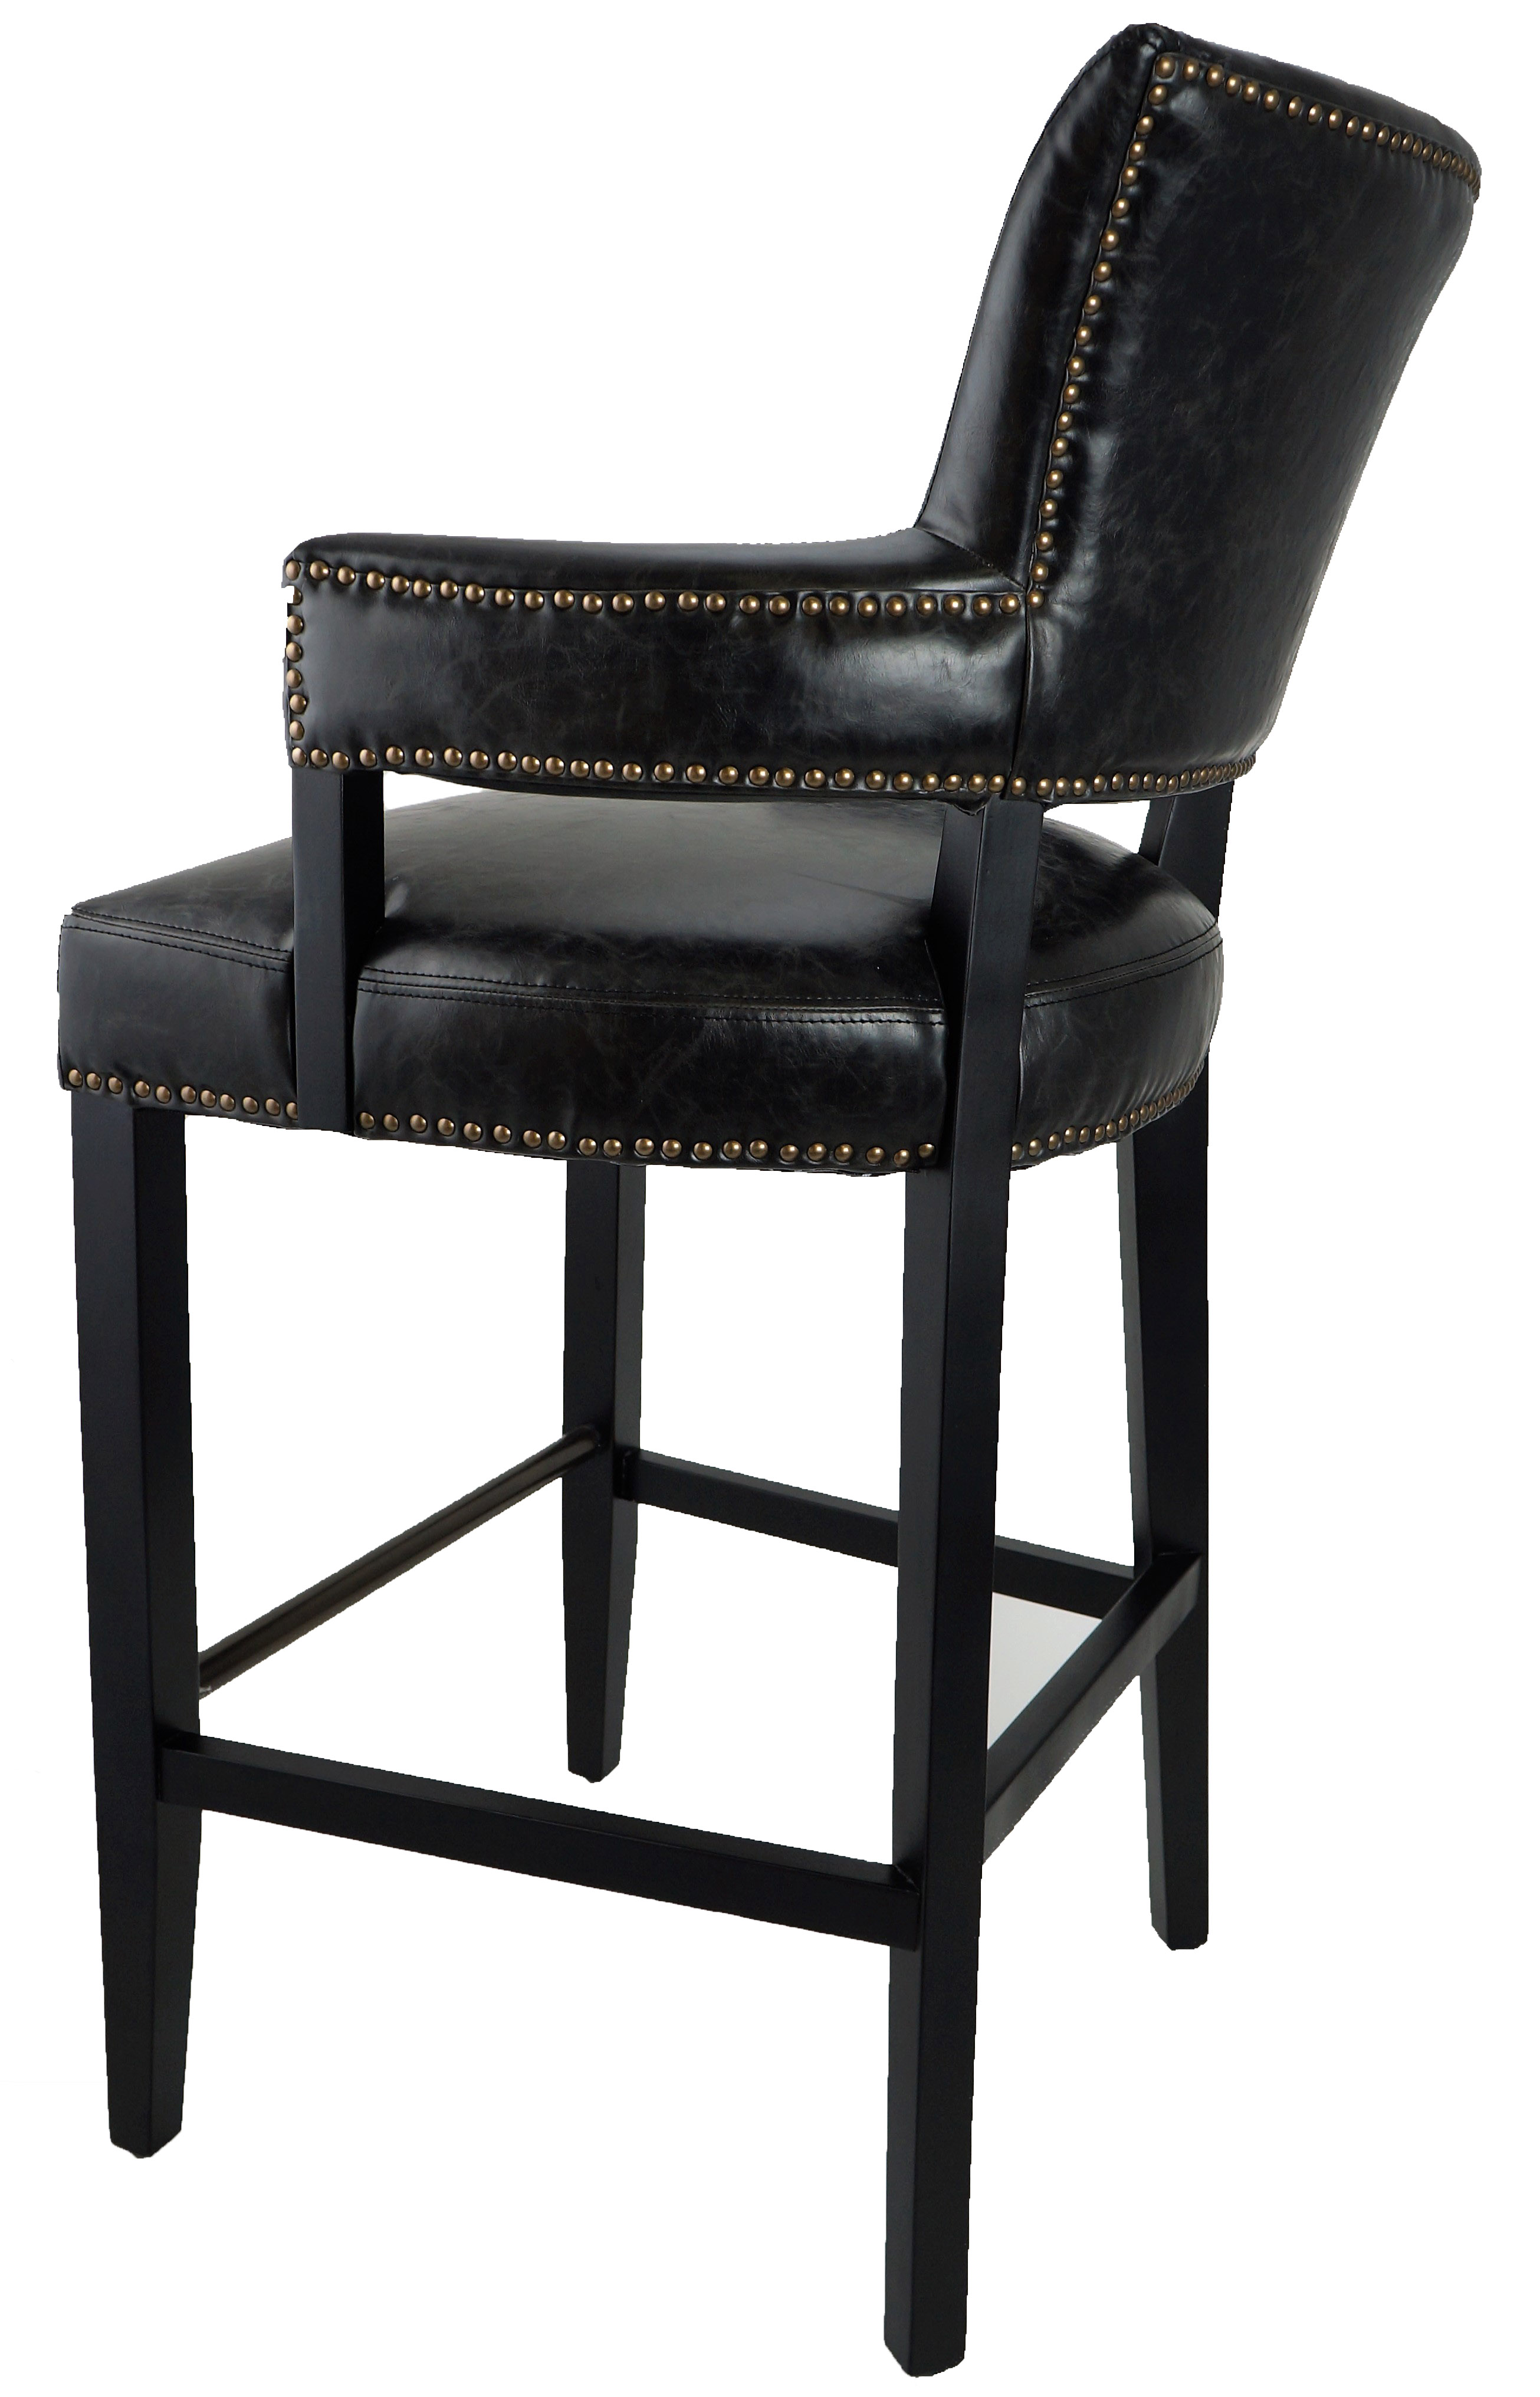 high bar stool chairs hickory chair fabrics stools & kitchen counter :: (on sale!) rv-4334 majestic looking n ...